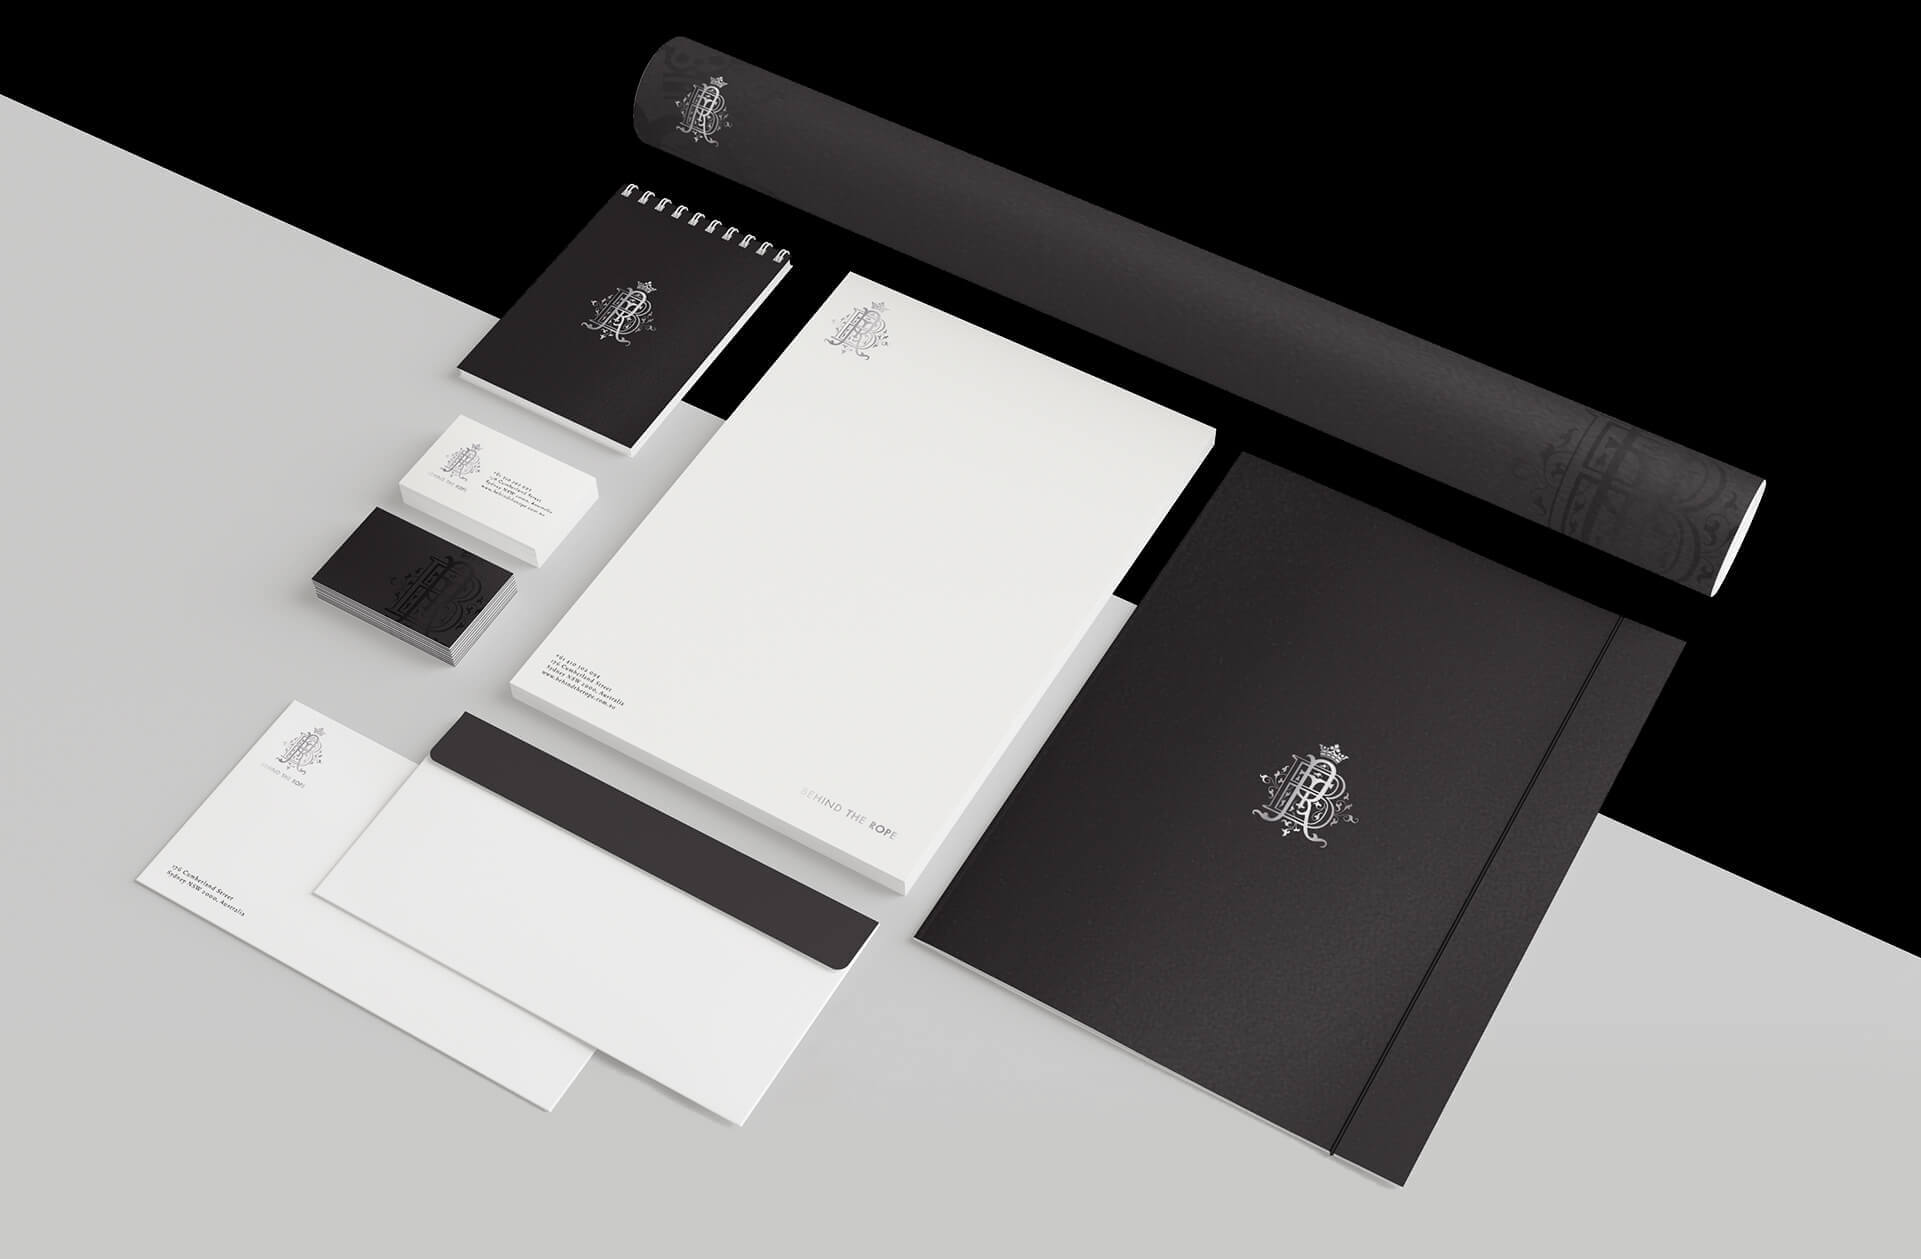 Branded stationery for a lifestyle company